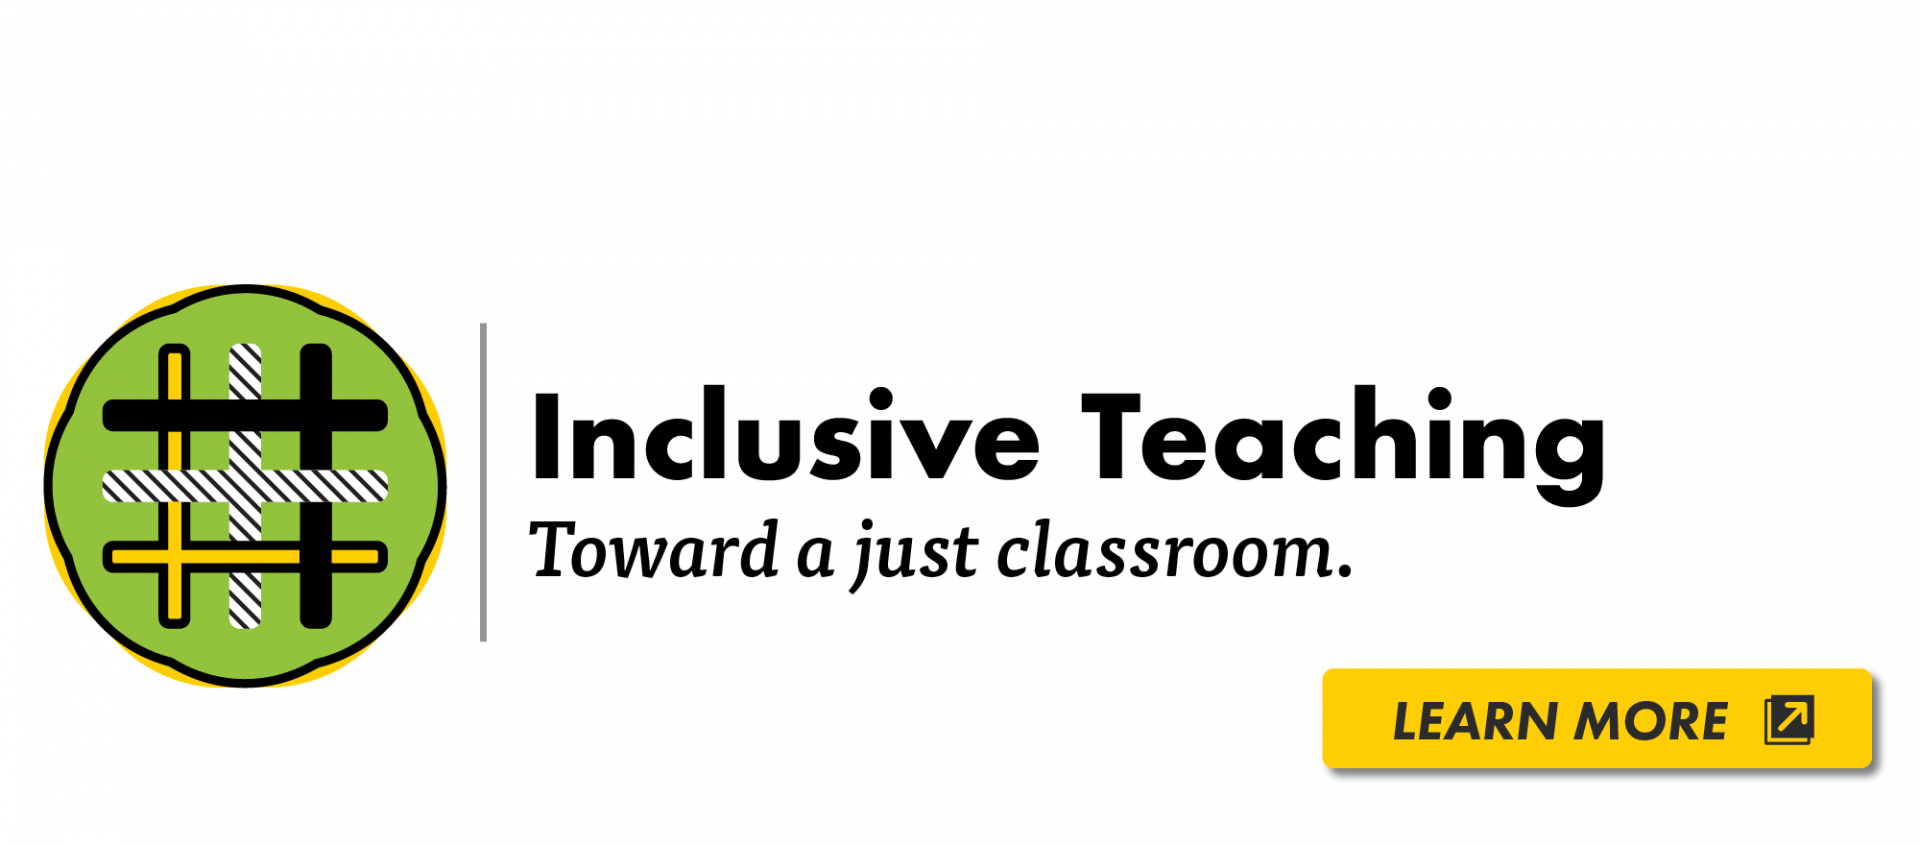 Inclusive Teaching learn more.